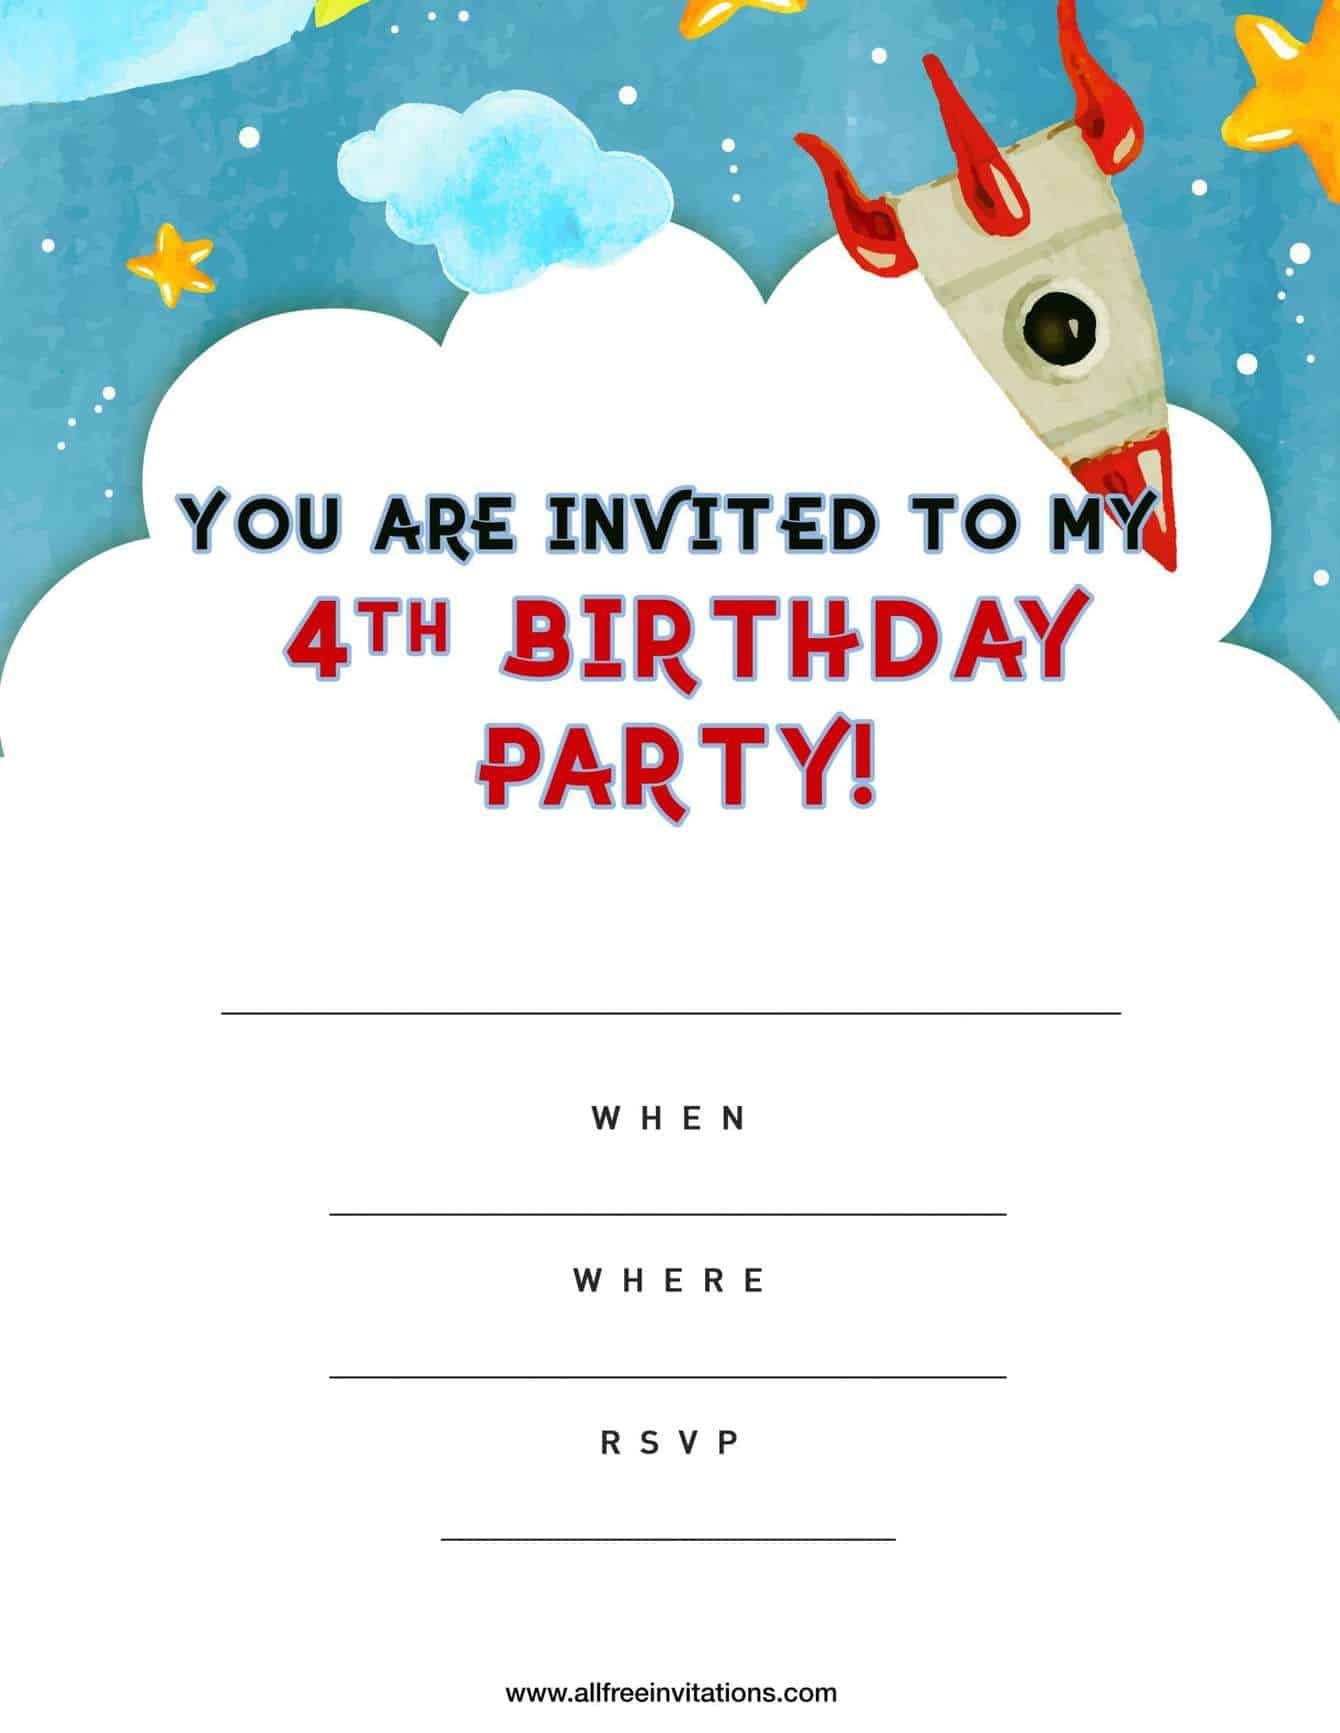 4th Birthday Party Invitation Blue Space Rocket